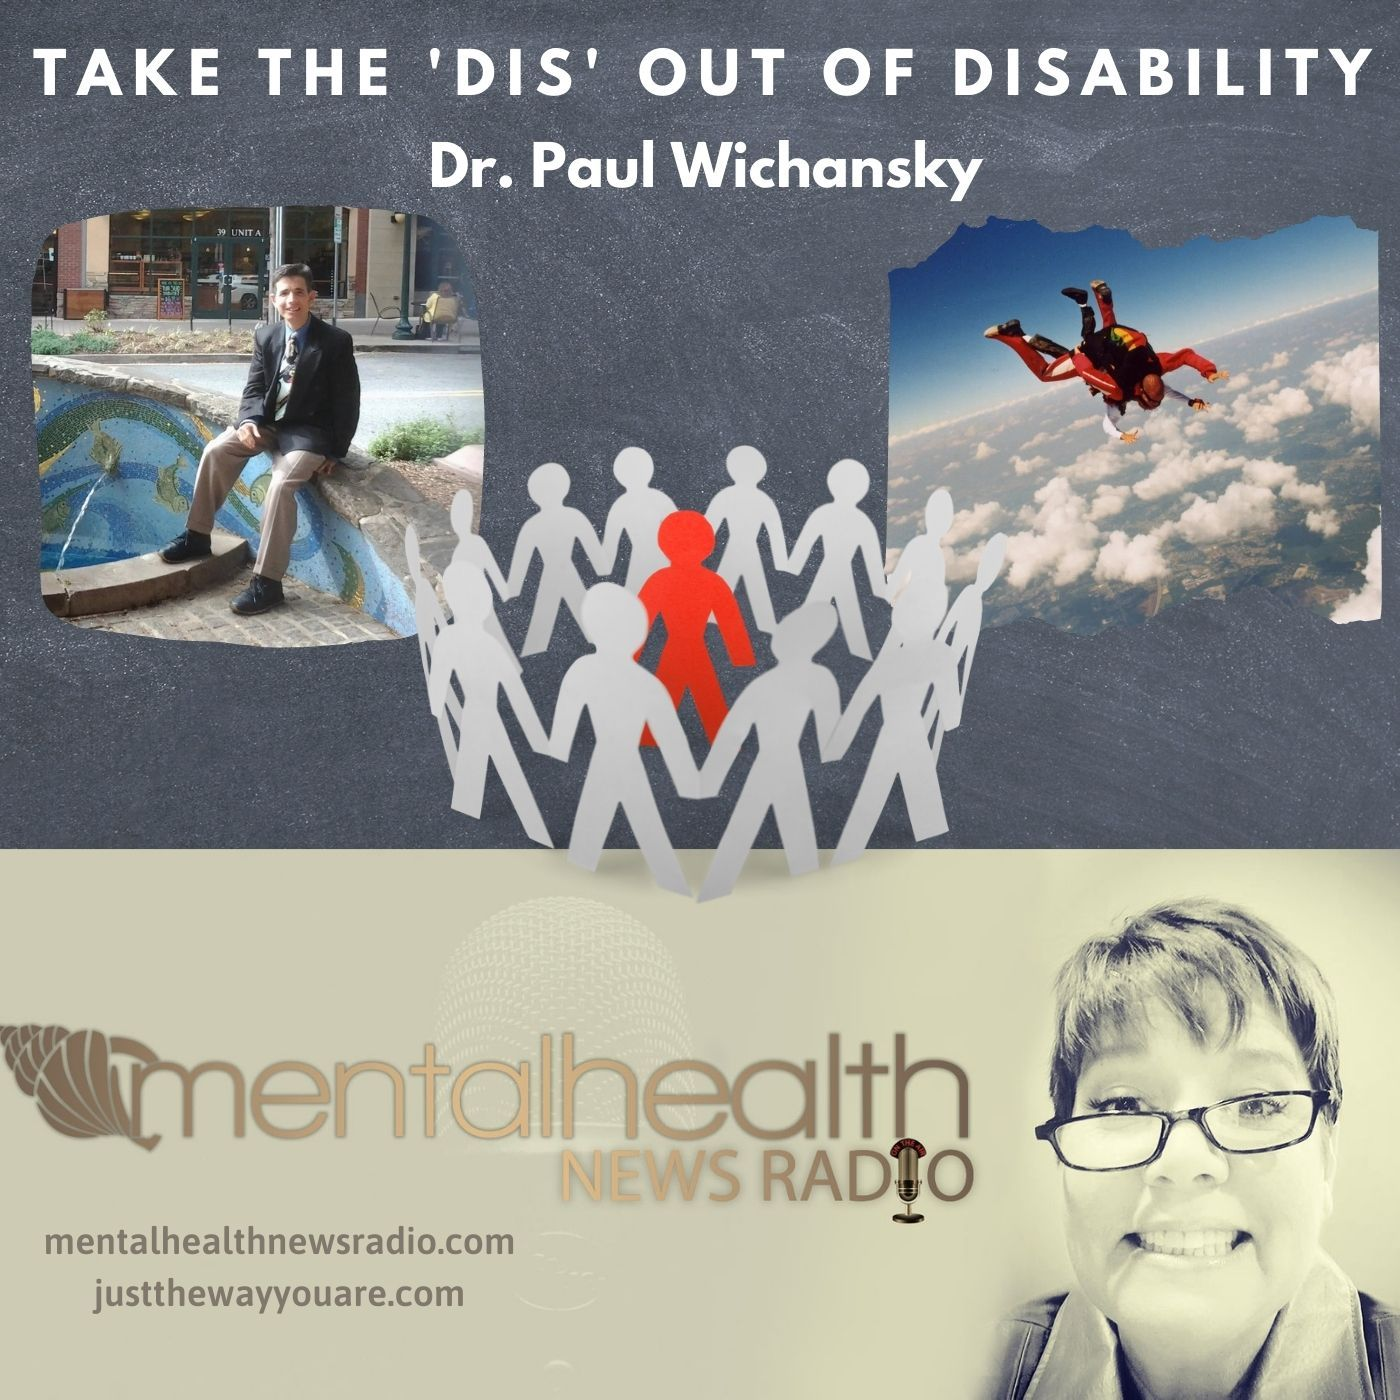 Mental Health News Radio - Taking the 'Dis' out of Disability with Dr. Paul Wichansky